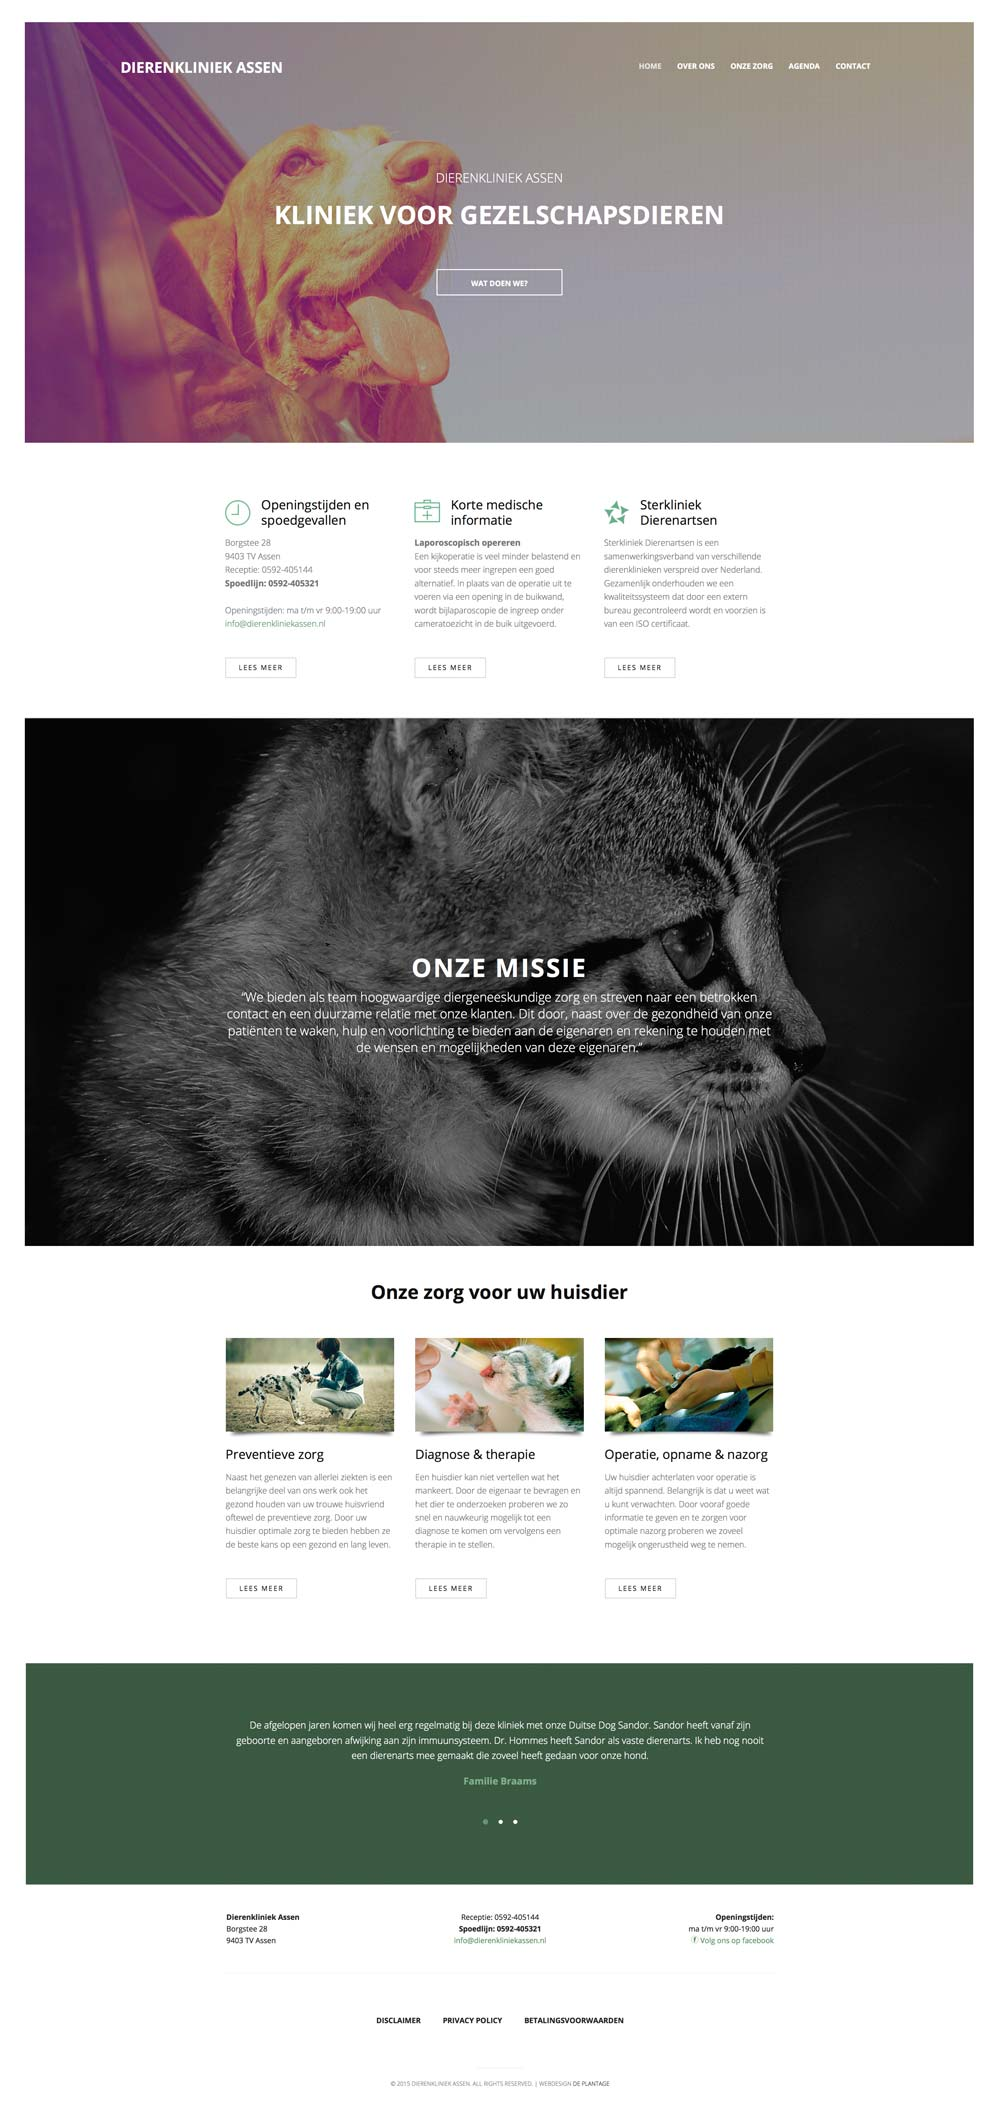 website dierenkliniek assen homepage